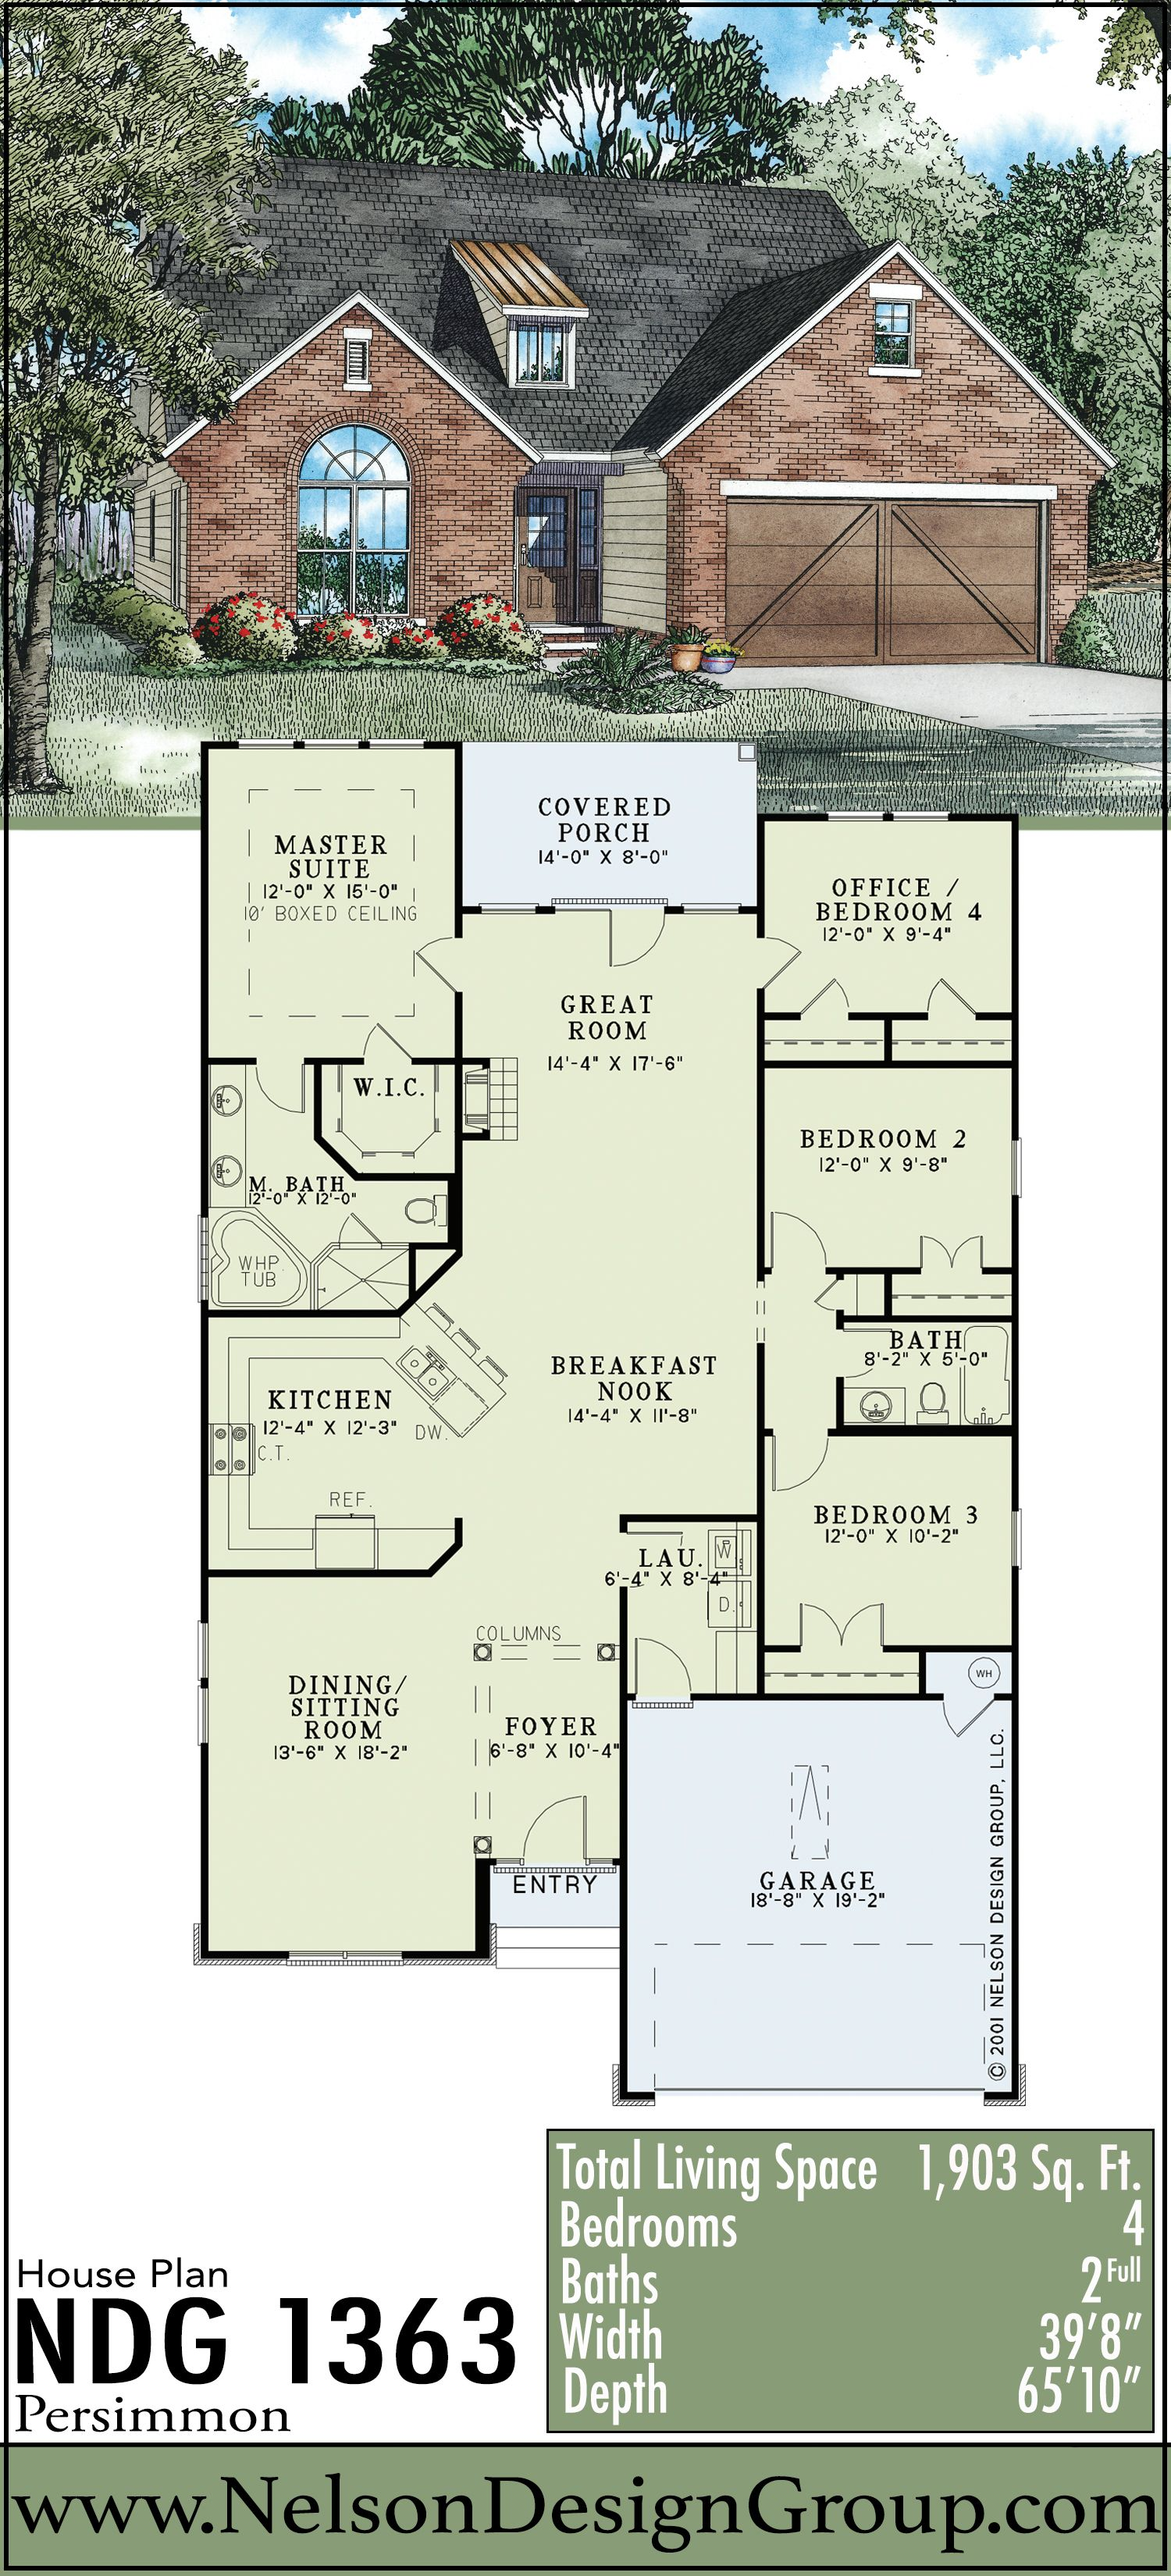 This Unique Arts And Craft Style Home Features 1 903 Sq Ft Of Total Living Space And Has 4 Bedrooms An Traditional House Plans Custom Home Plans House Plans